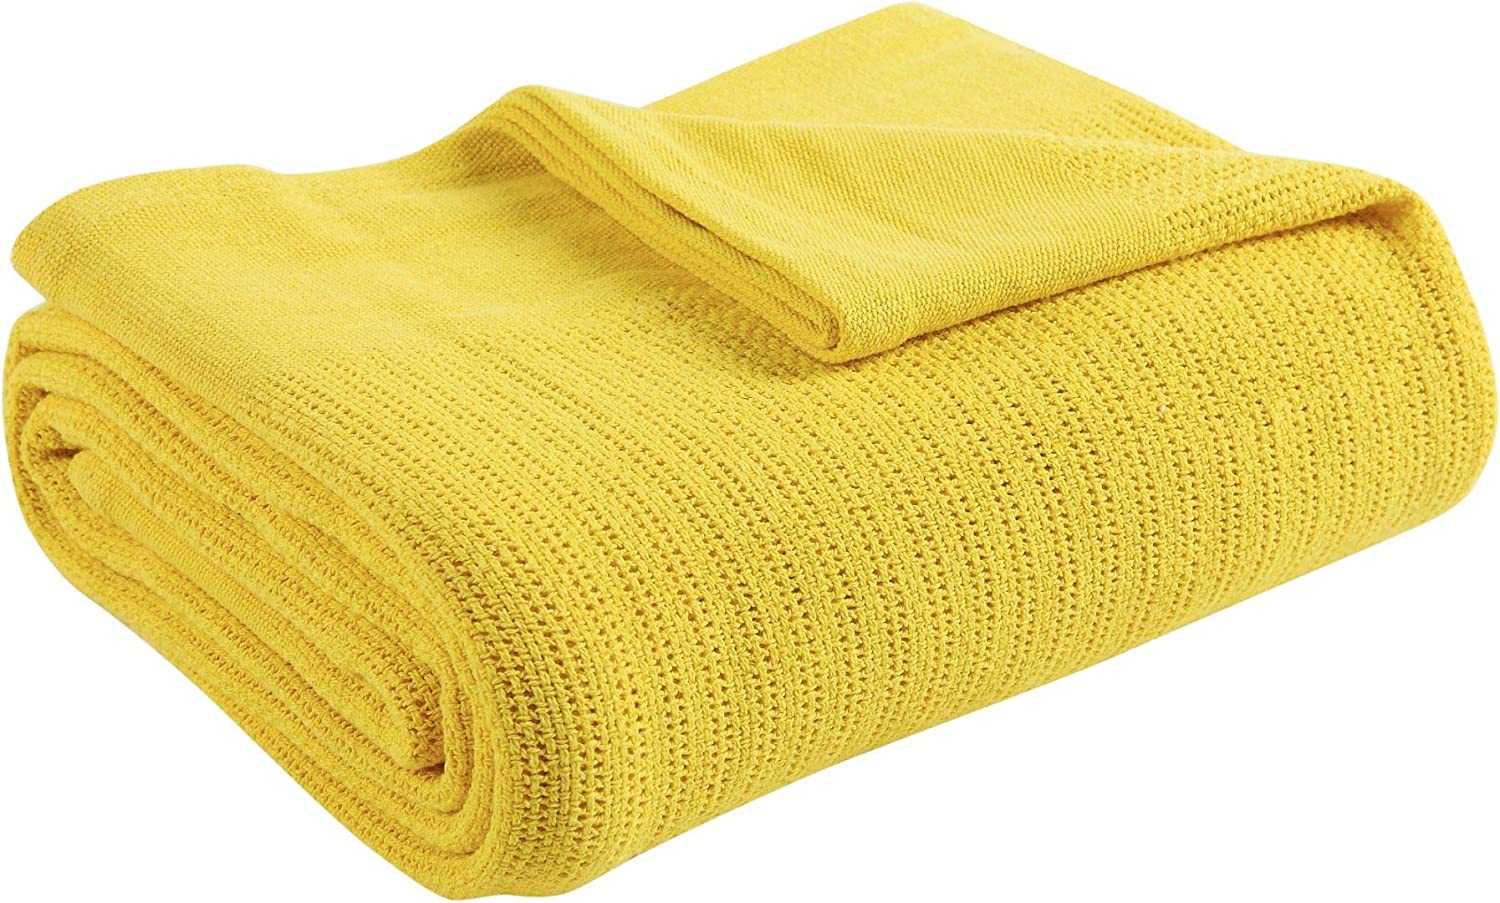 Avanti Linens Fiesta - an American Soft Limited time Colorado Springs Mall for free shipping Thermal 100 Weave Icon